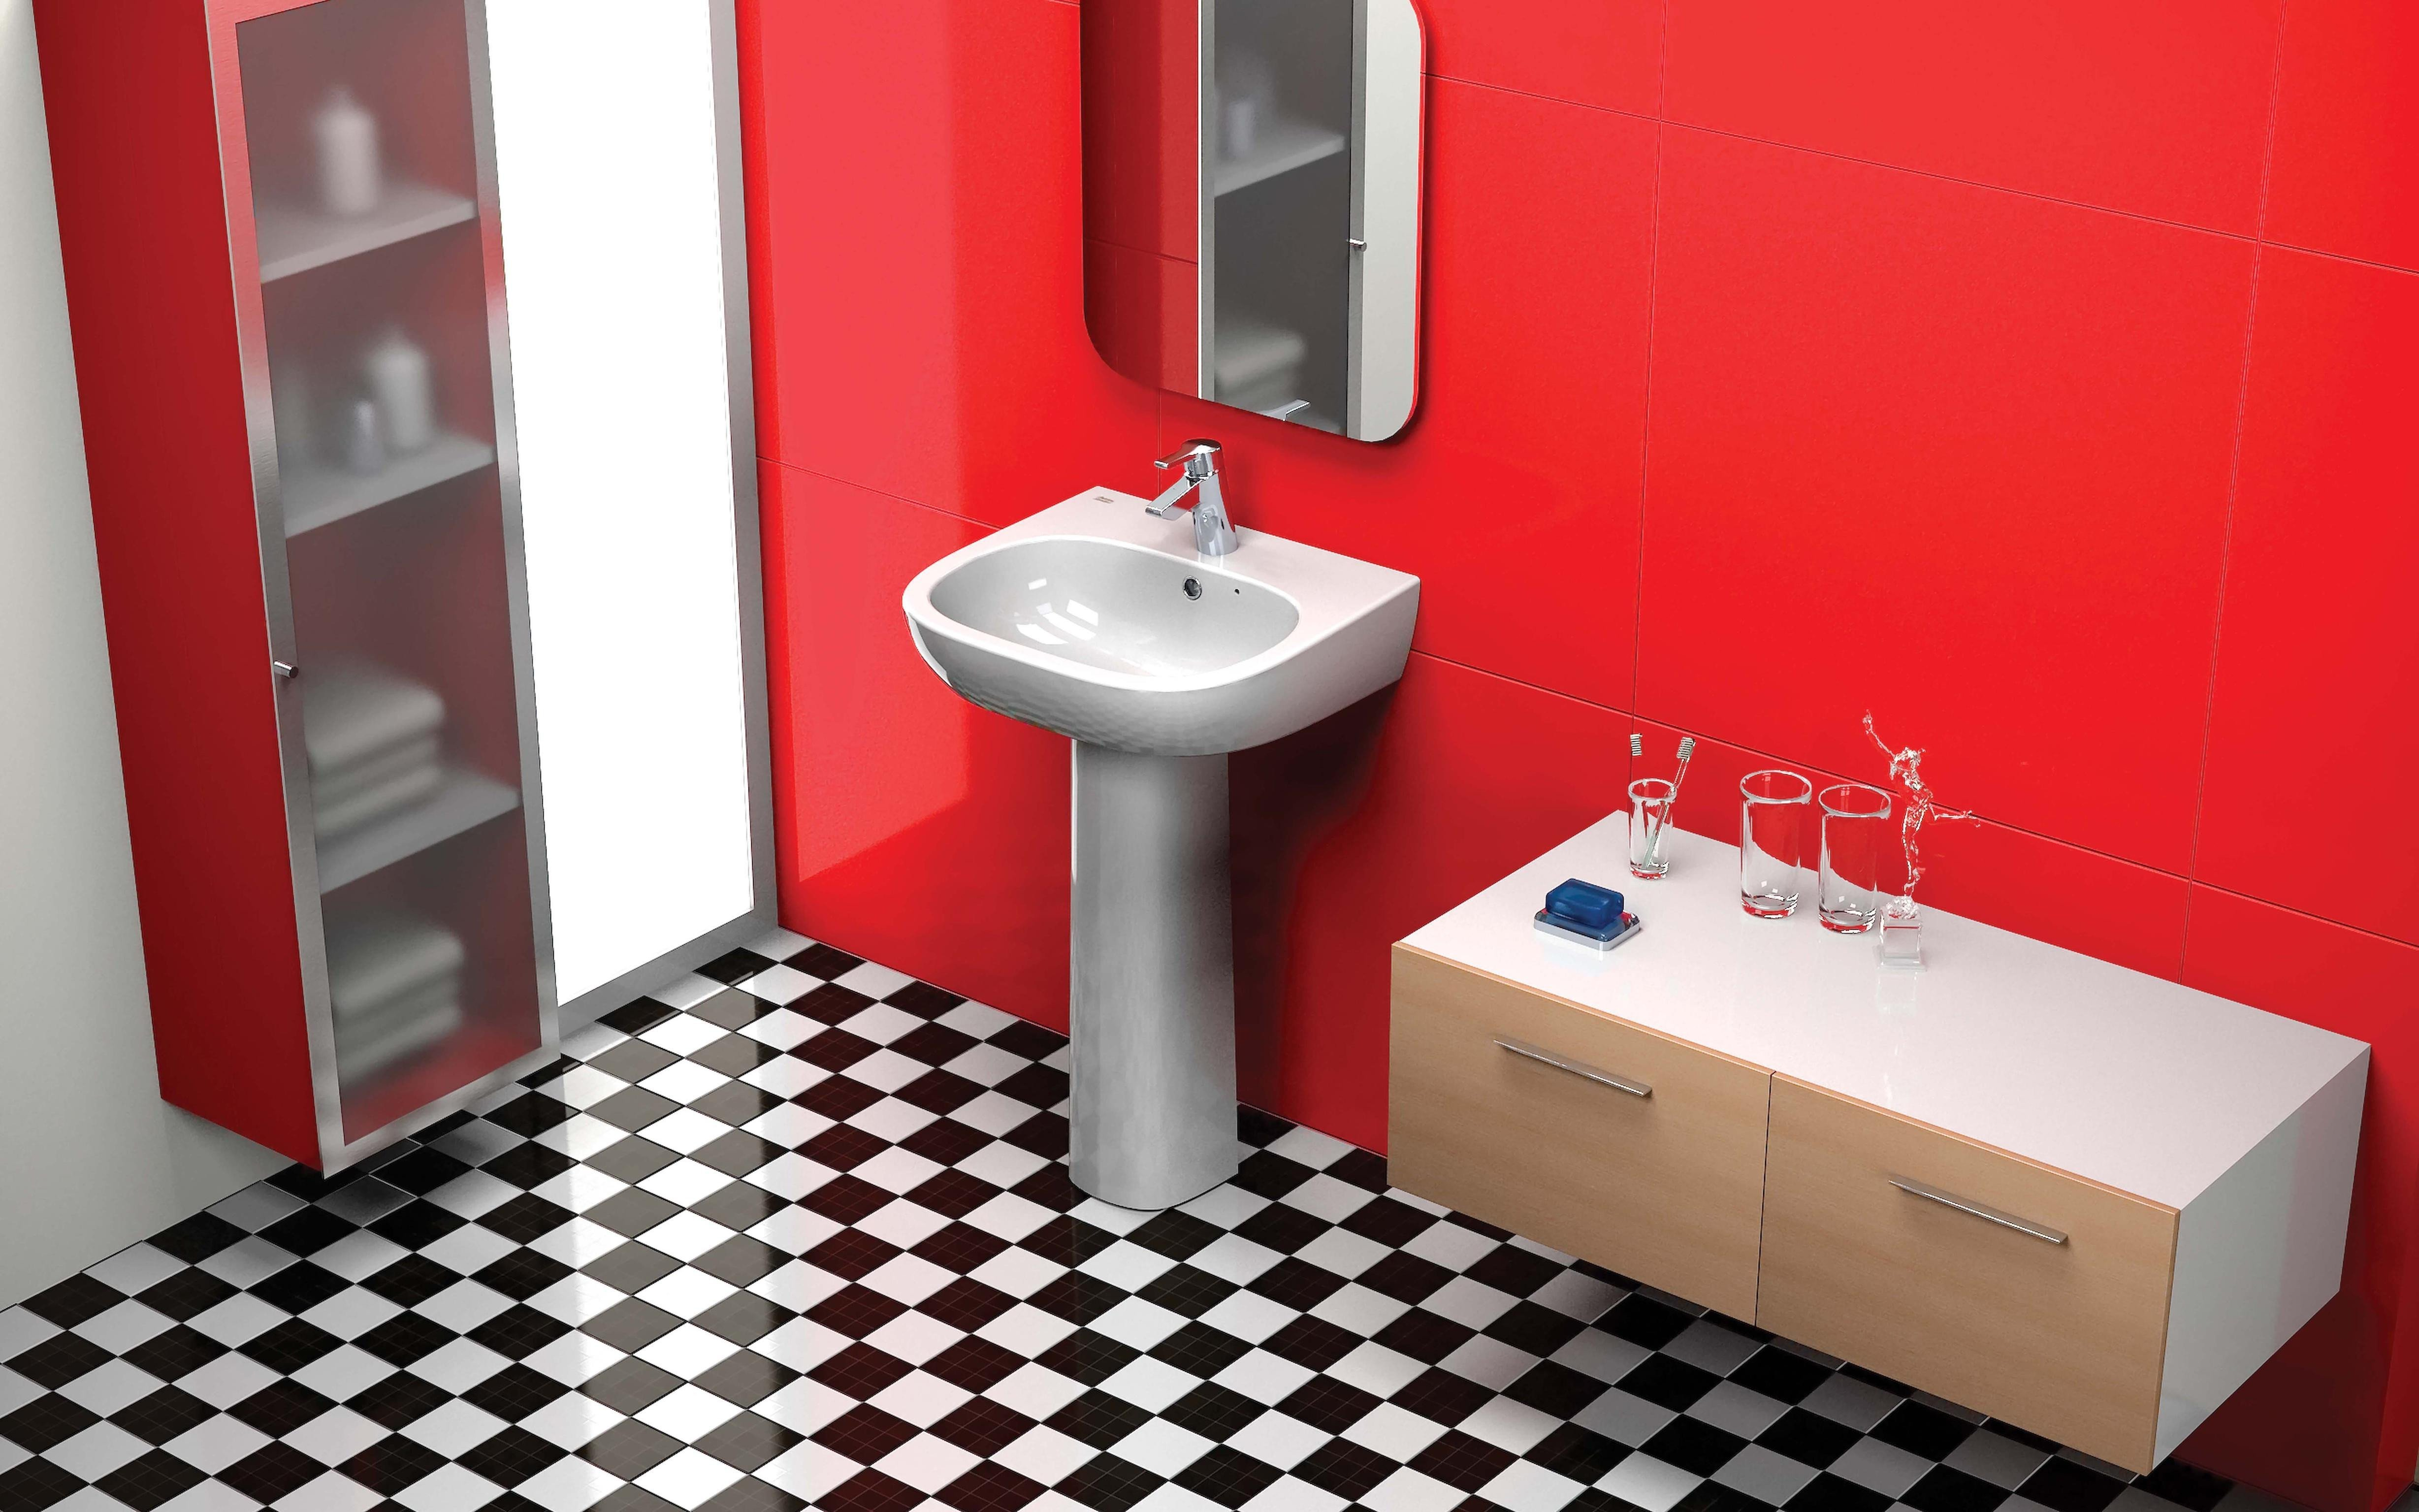 Red and Brown Bathroom Decor Lovely 99 Excelent Red and Brown Bathroom Accessories Image Ideas